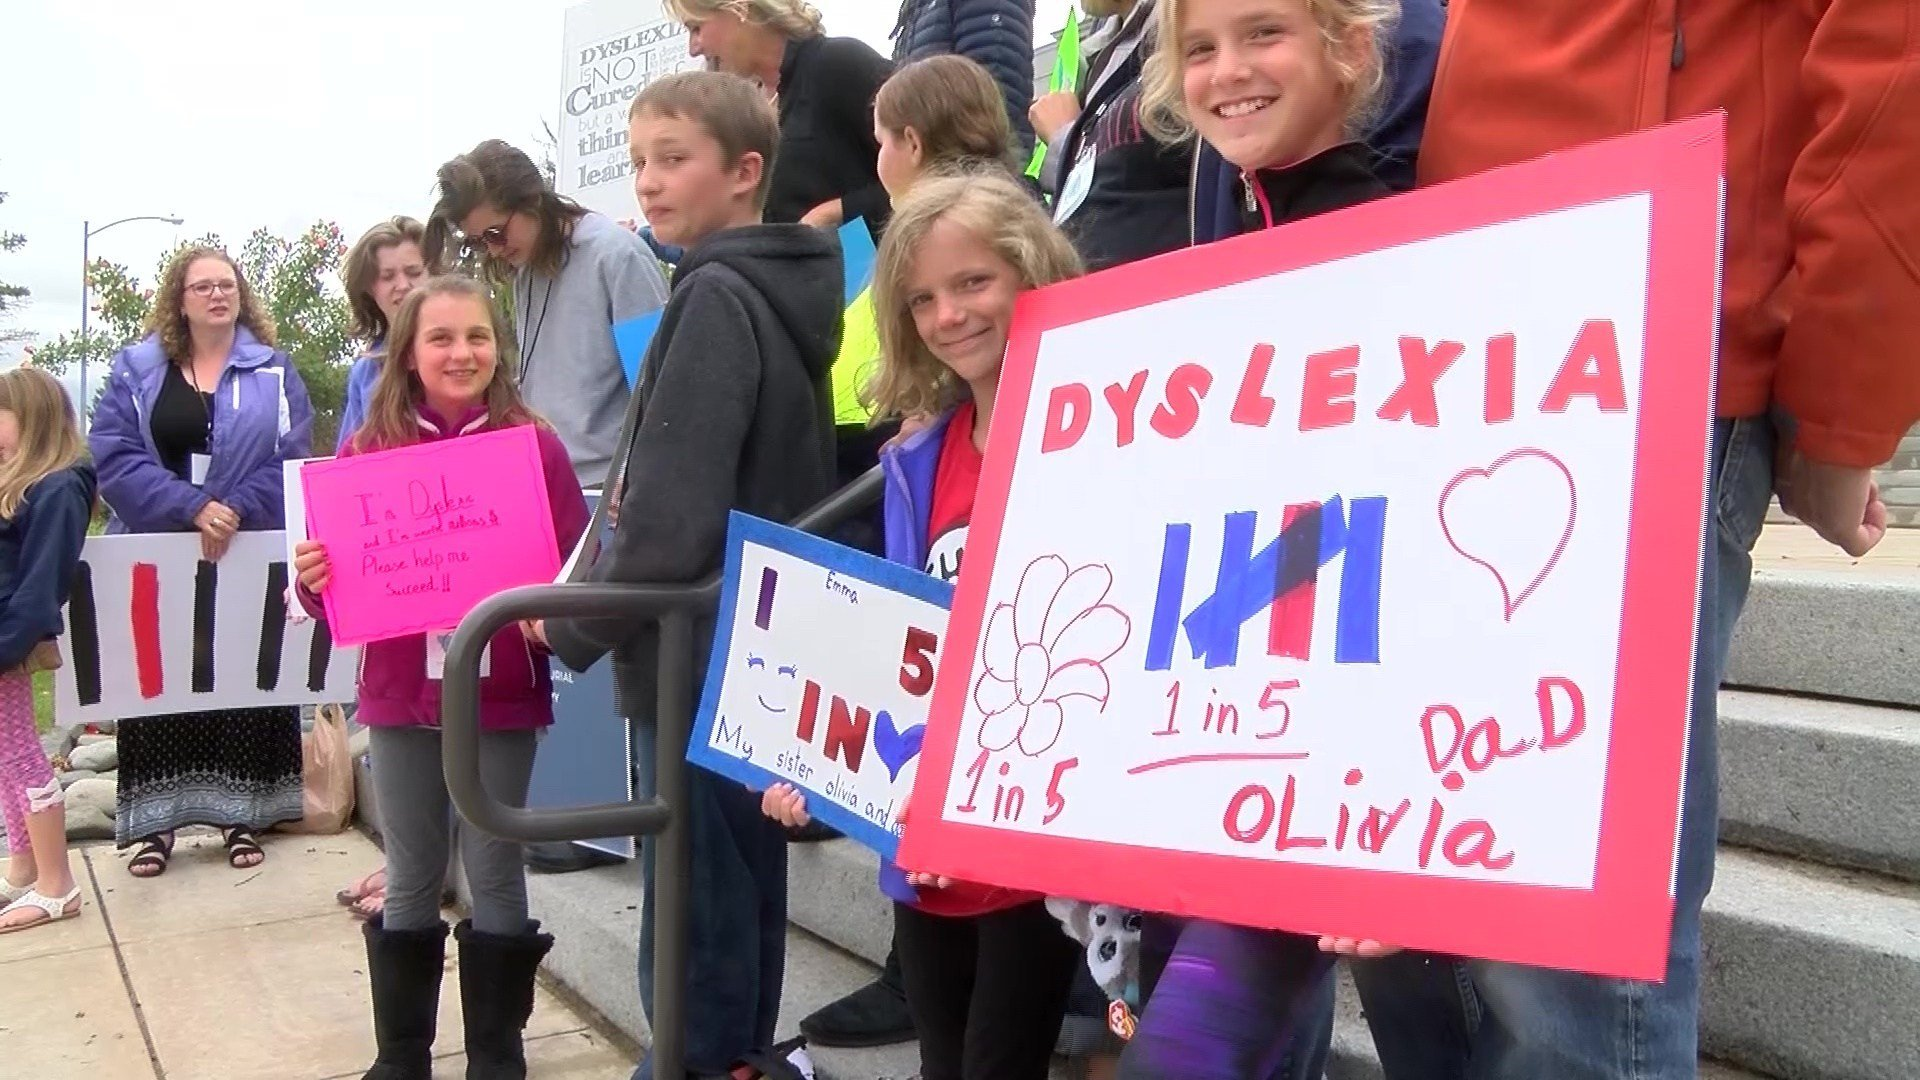 Families and friends of people challenged by dyslexia rallied at the Capitol on 6.13.17. (MTN News photo)